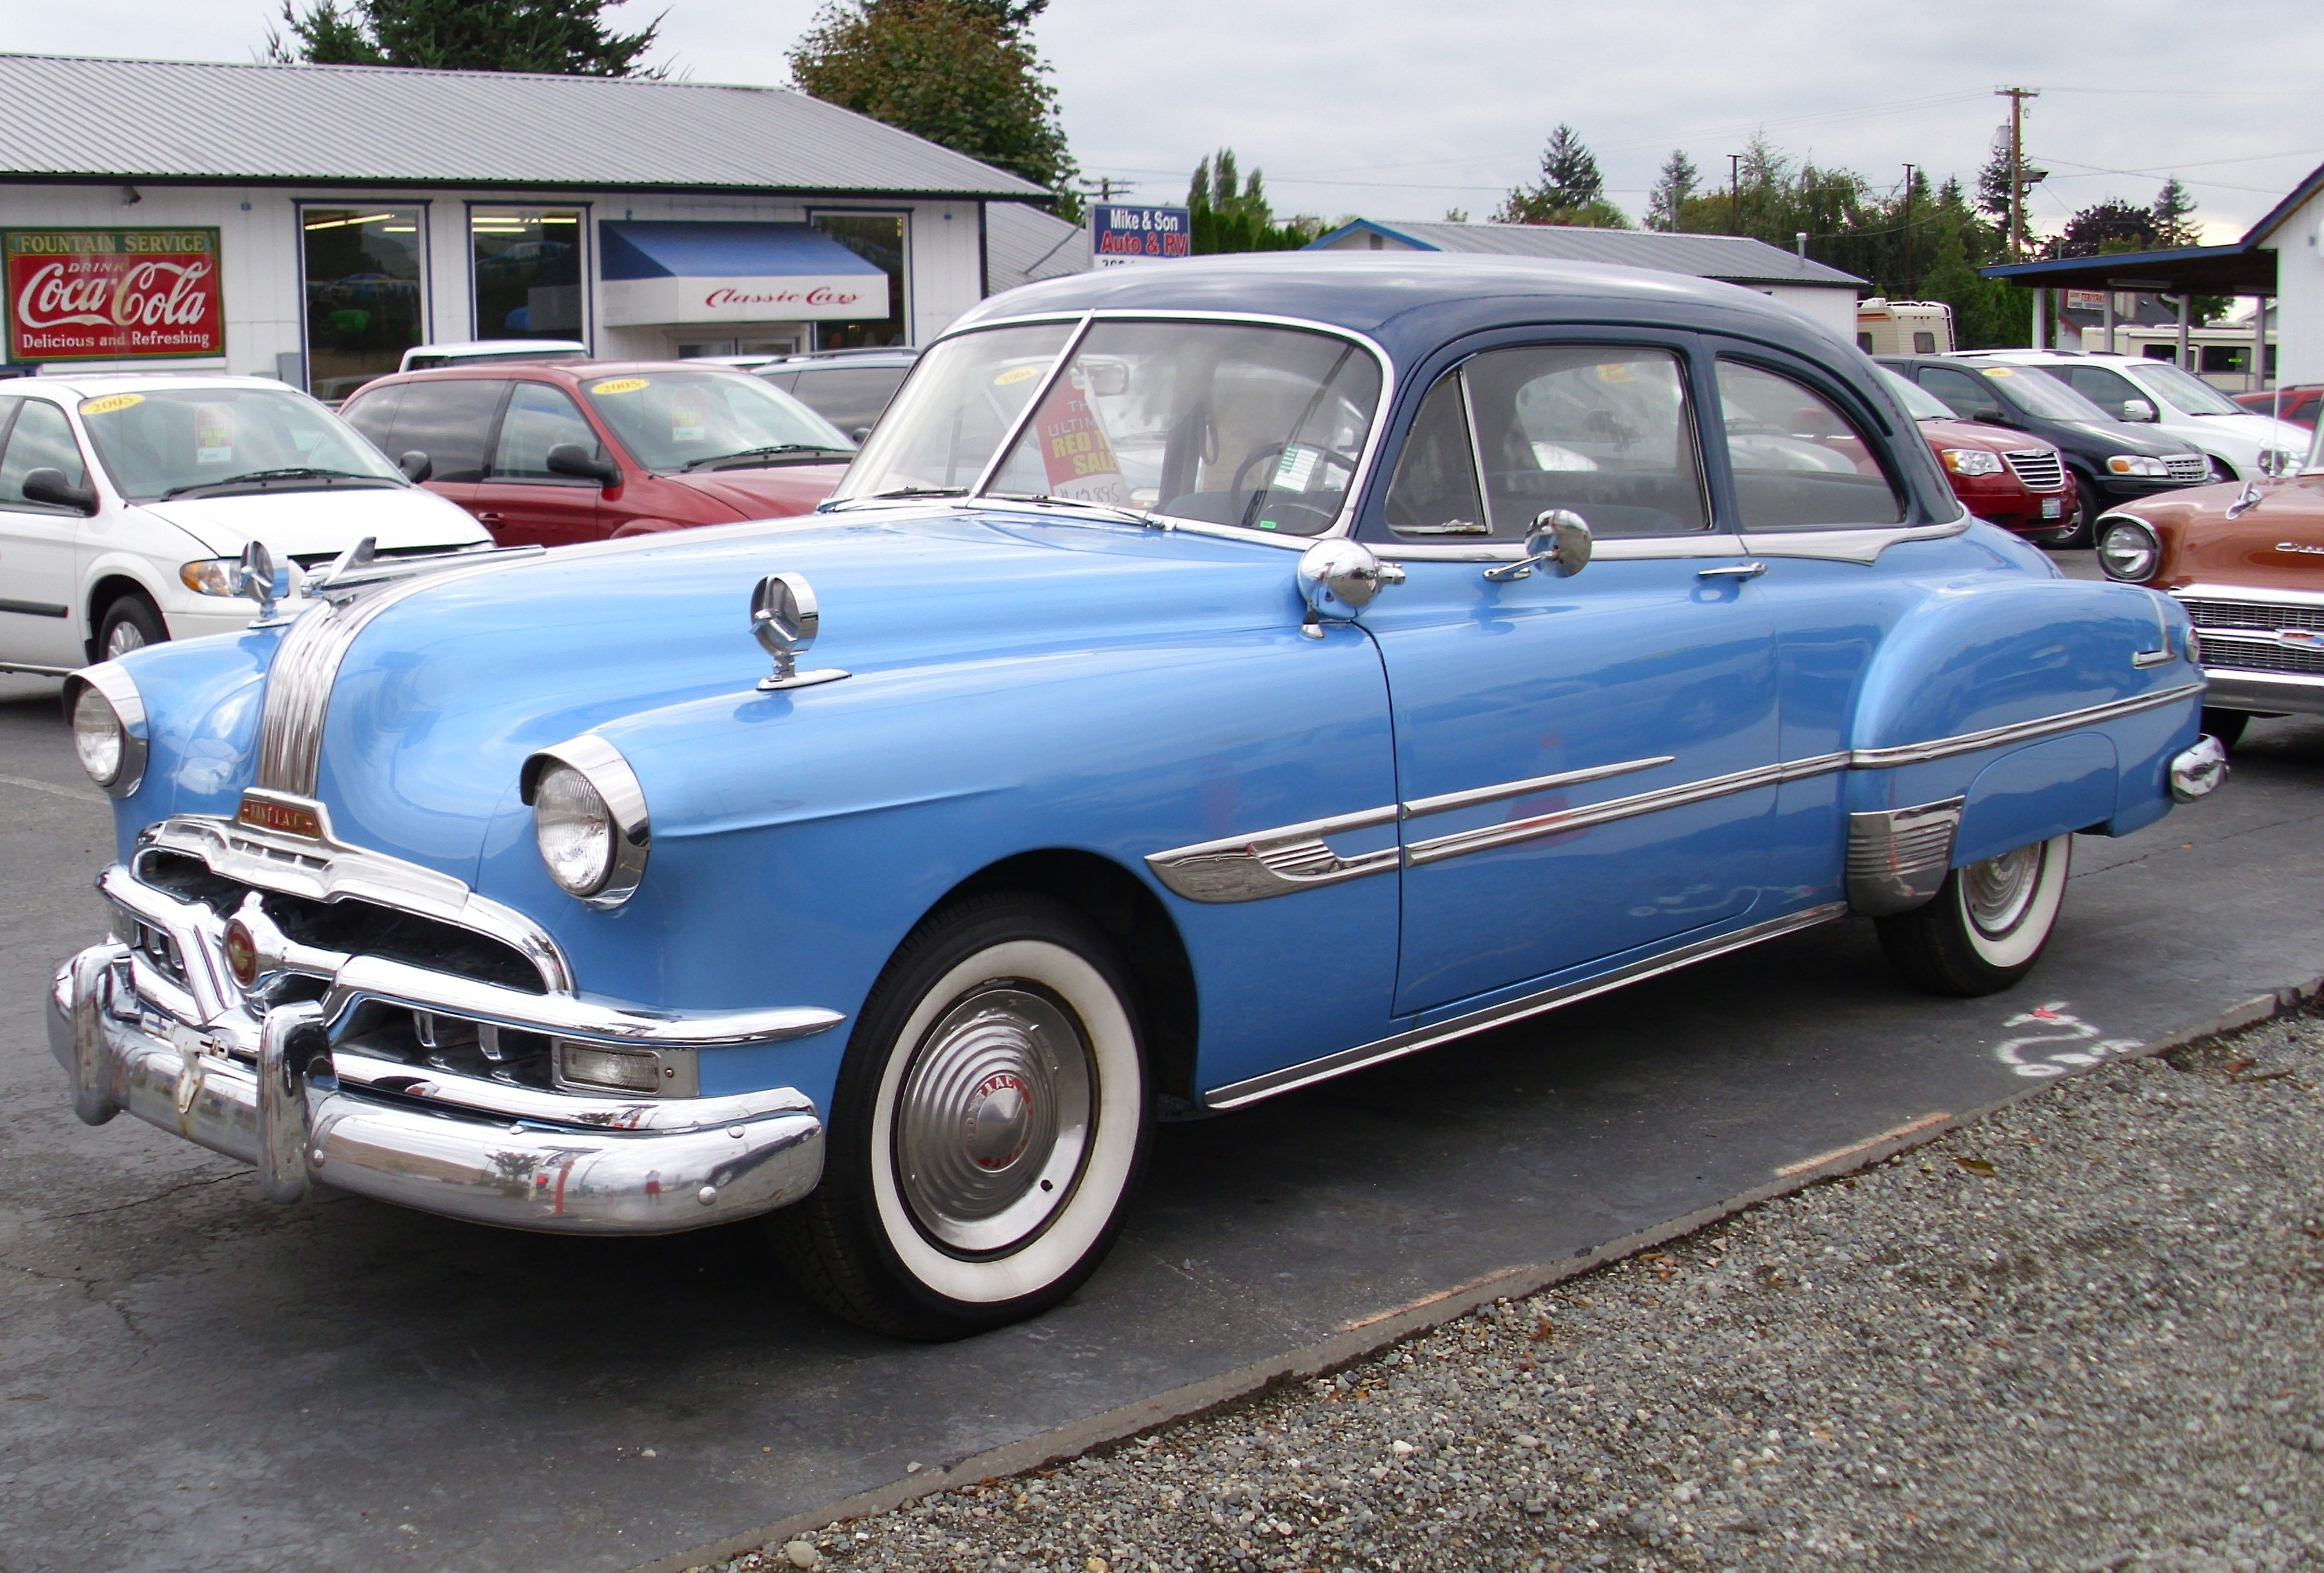 Big M Ford >> 1952 Pontiac | On a used car lot, asking $13,995. Nice look… | Flickr - Photo Sharing!